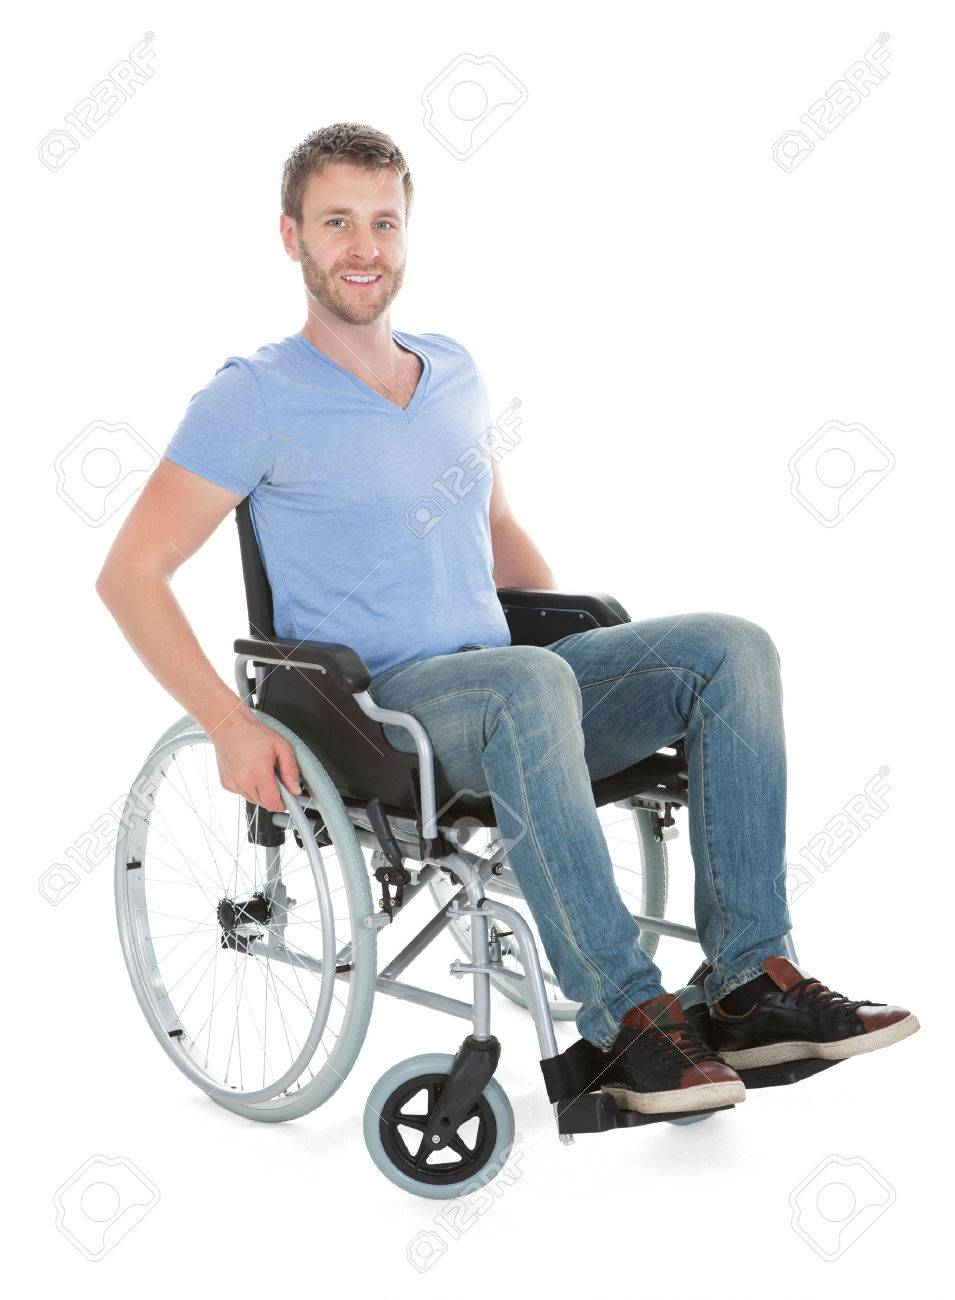 wheelchair man folding chairs wholesale los angeles full length portrait of disabled on over white background stock photo 30581225